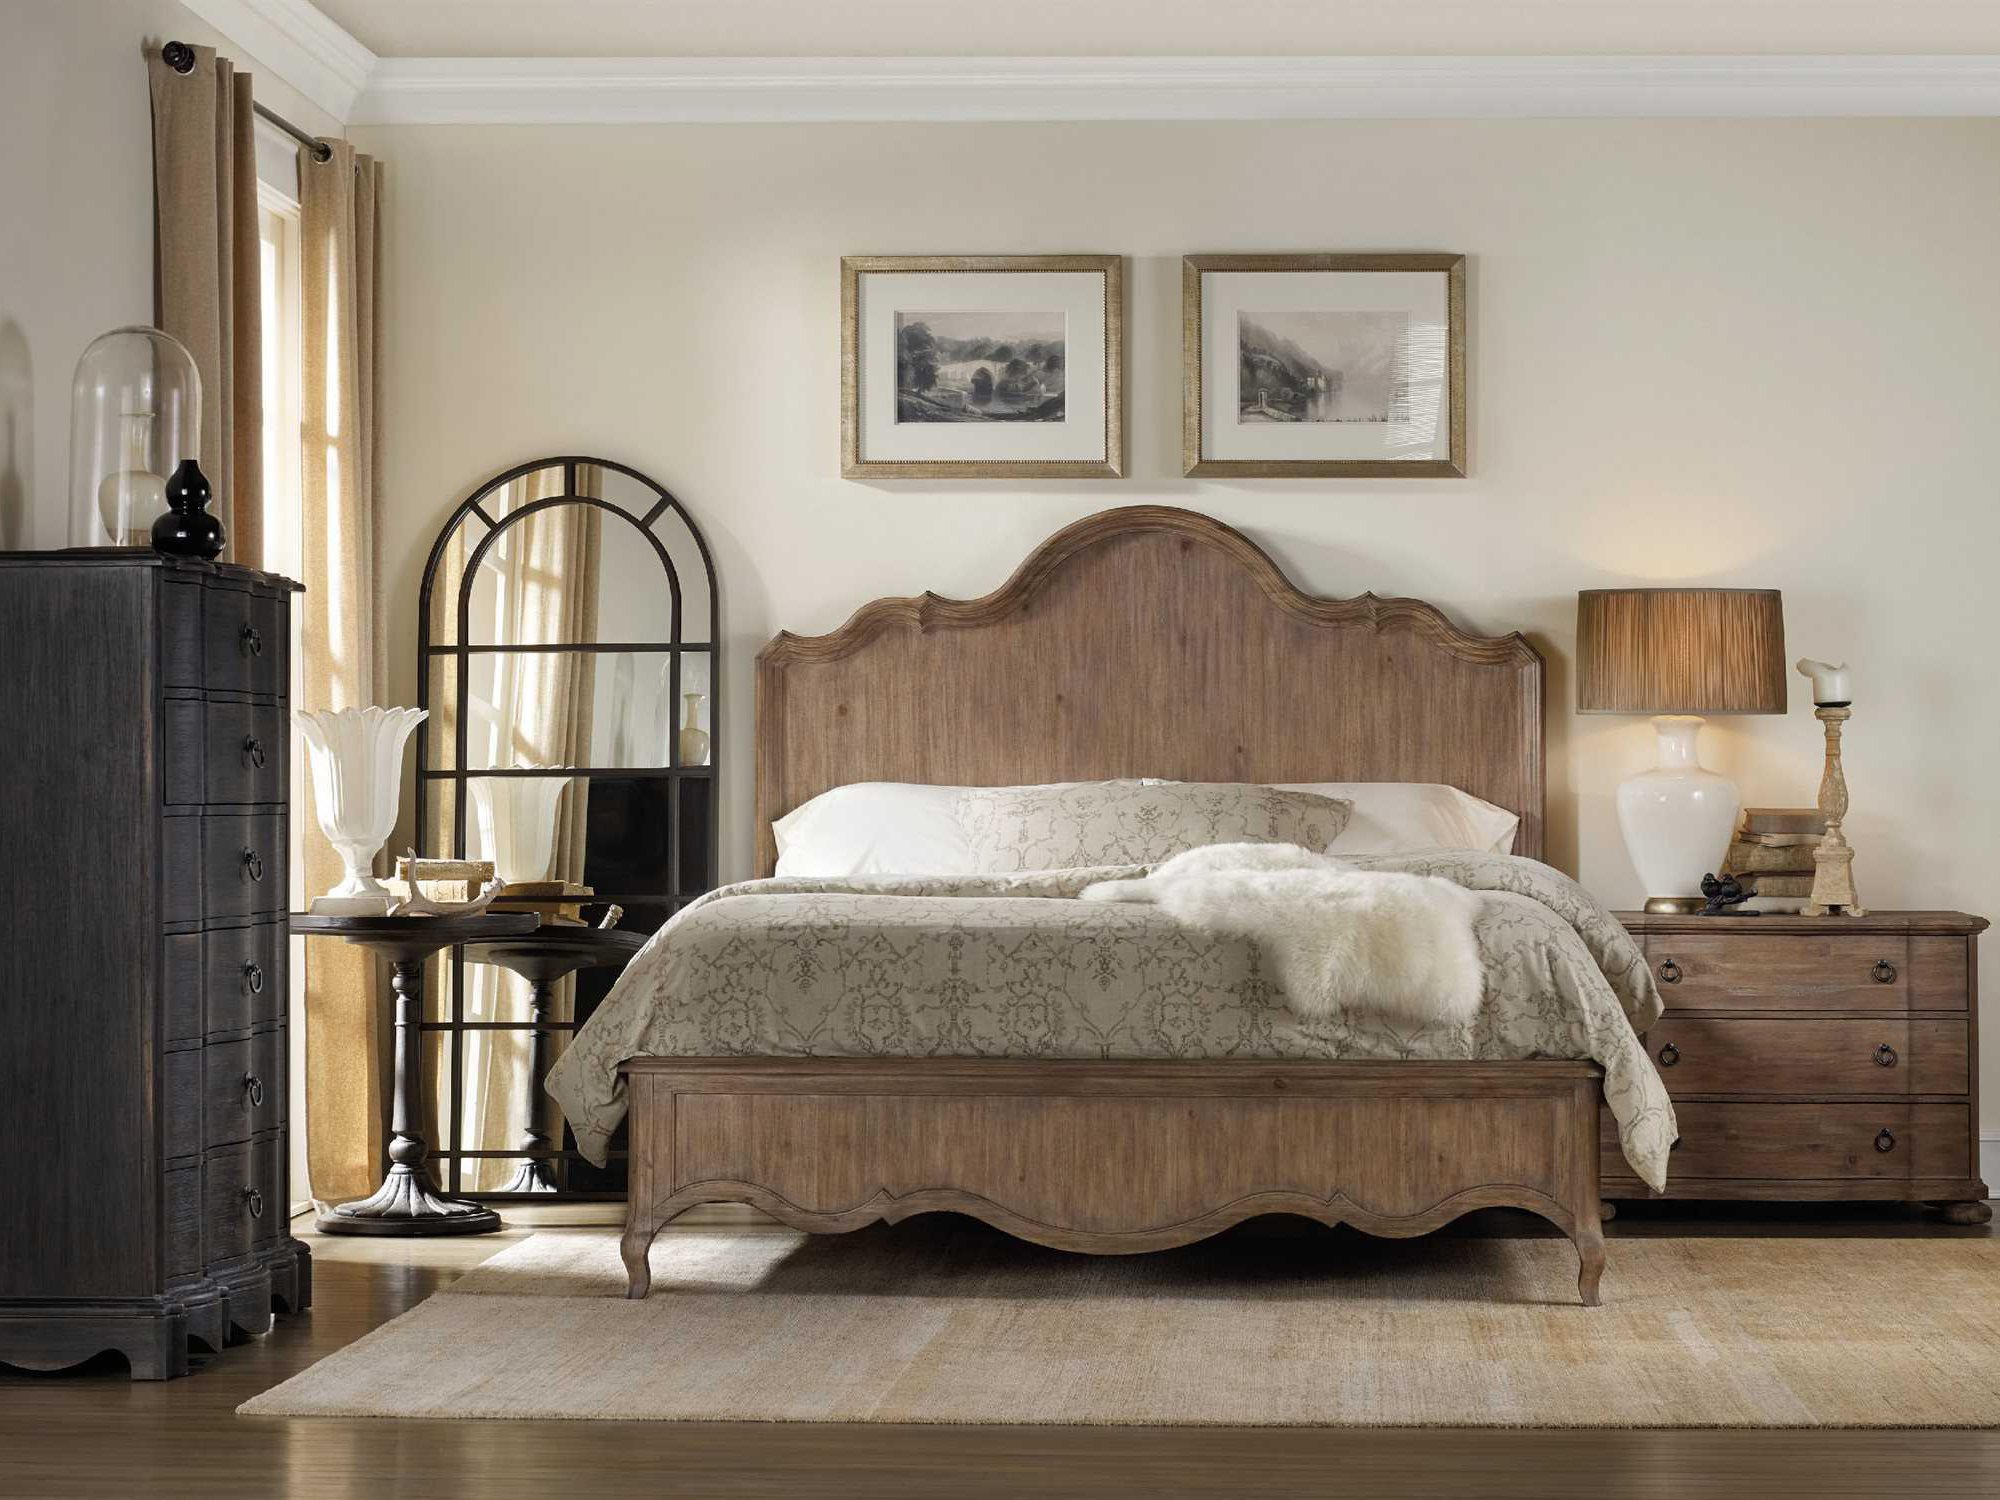 Hooker furniture corsica wood panel bed bedroom set for Hooker bedroom furniture